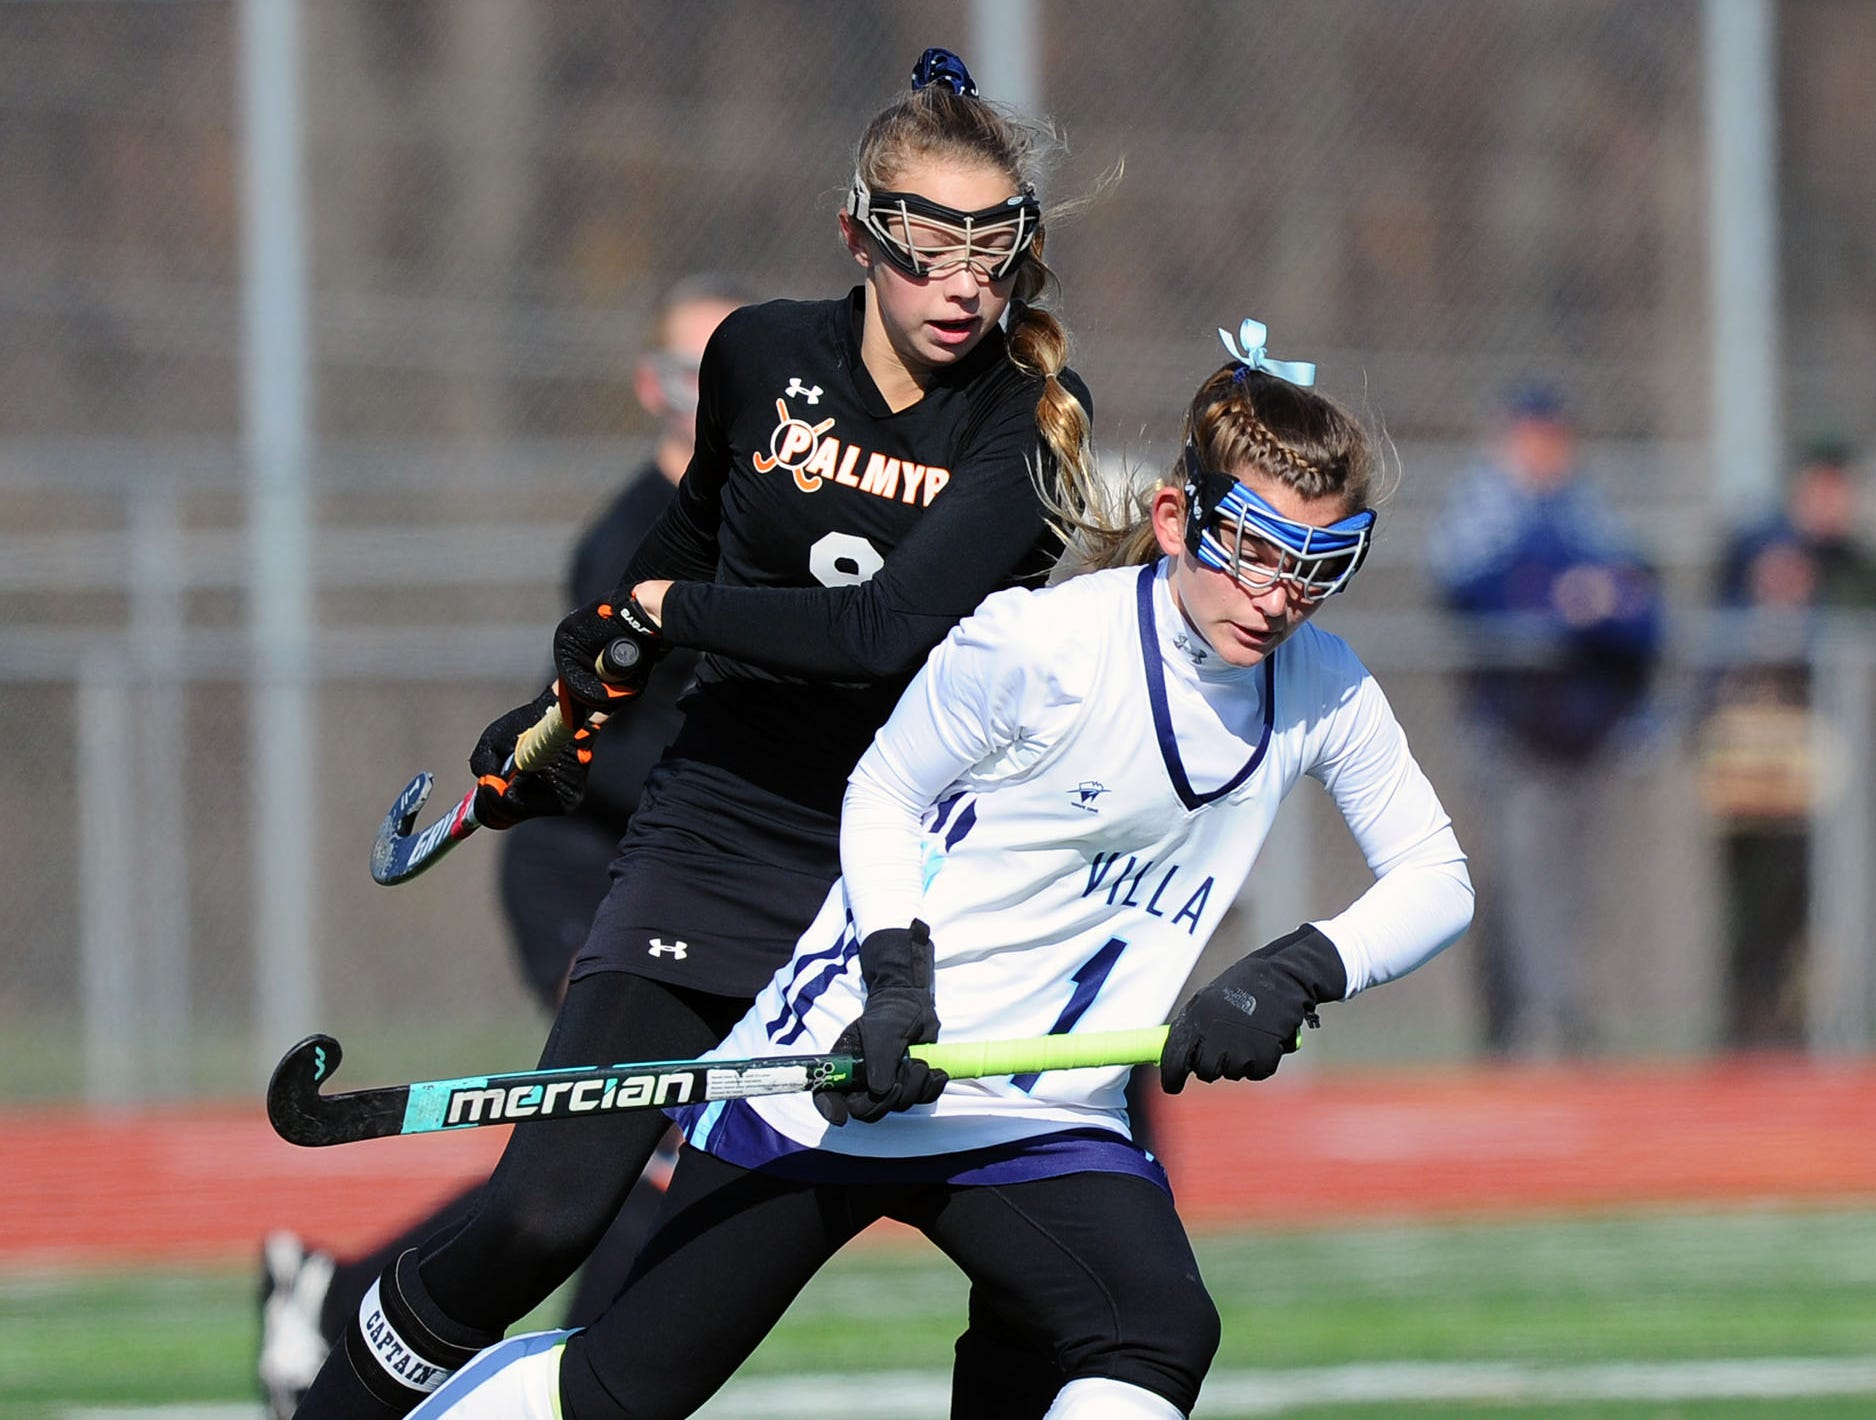 Palmyra's Nicole Shank (9) fights for the ball at mid-field with Villa Maria's Annie Shaw (1) during the first half of play.